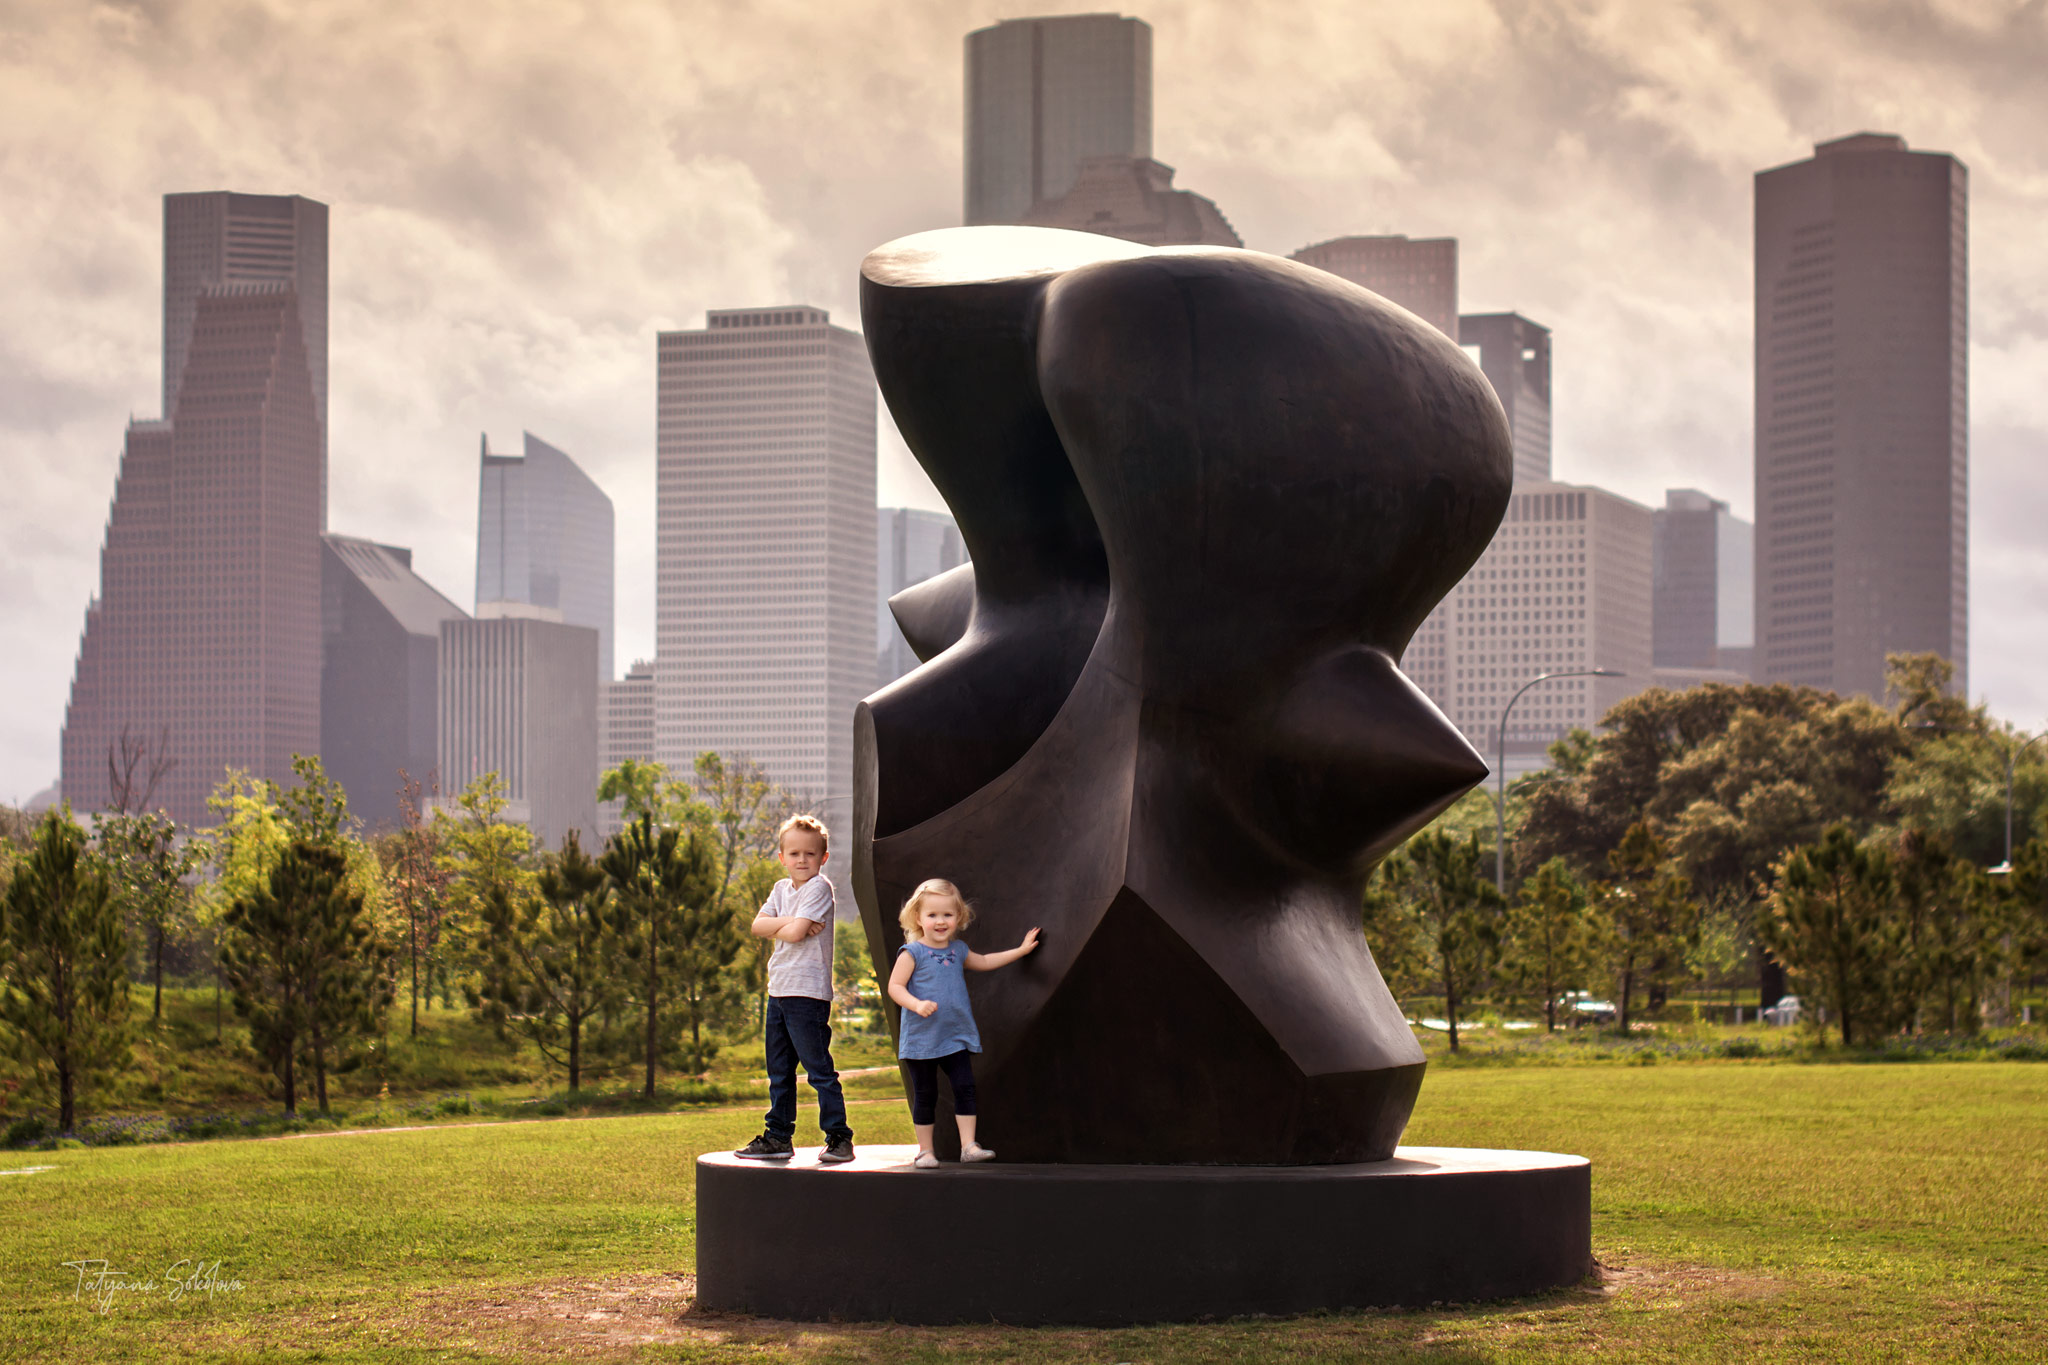 Child and Family Photographer in Houston; Houston Downtown Photo Sessions; Houston Buffalo Bayou Photo Sessions